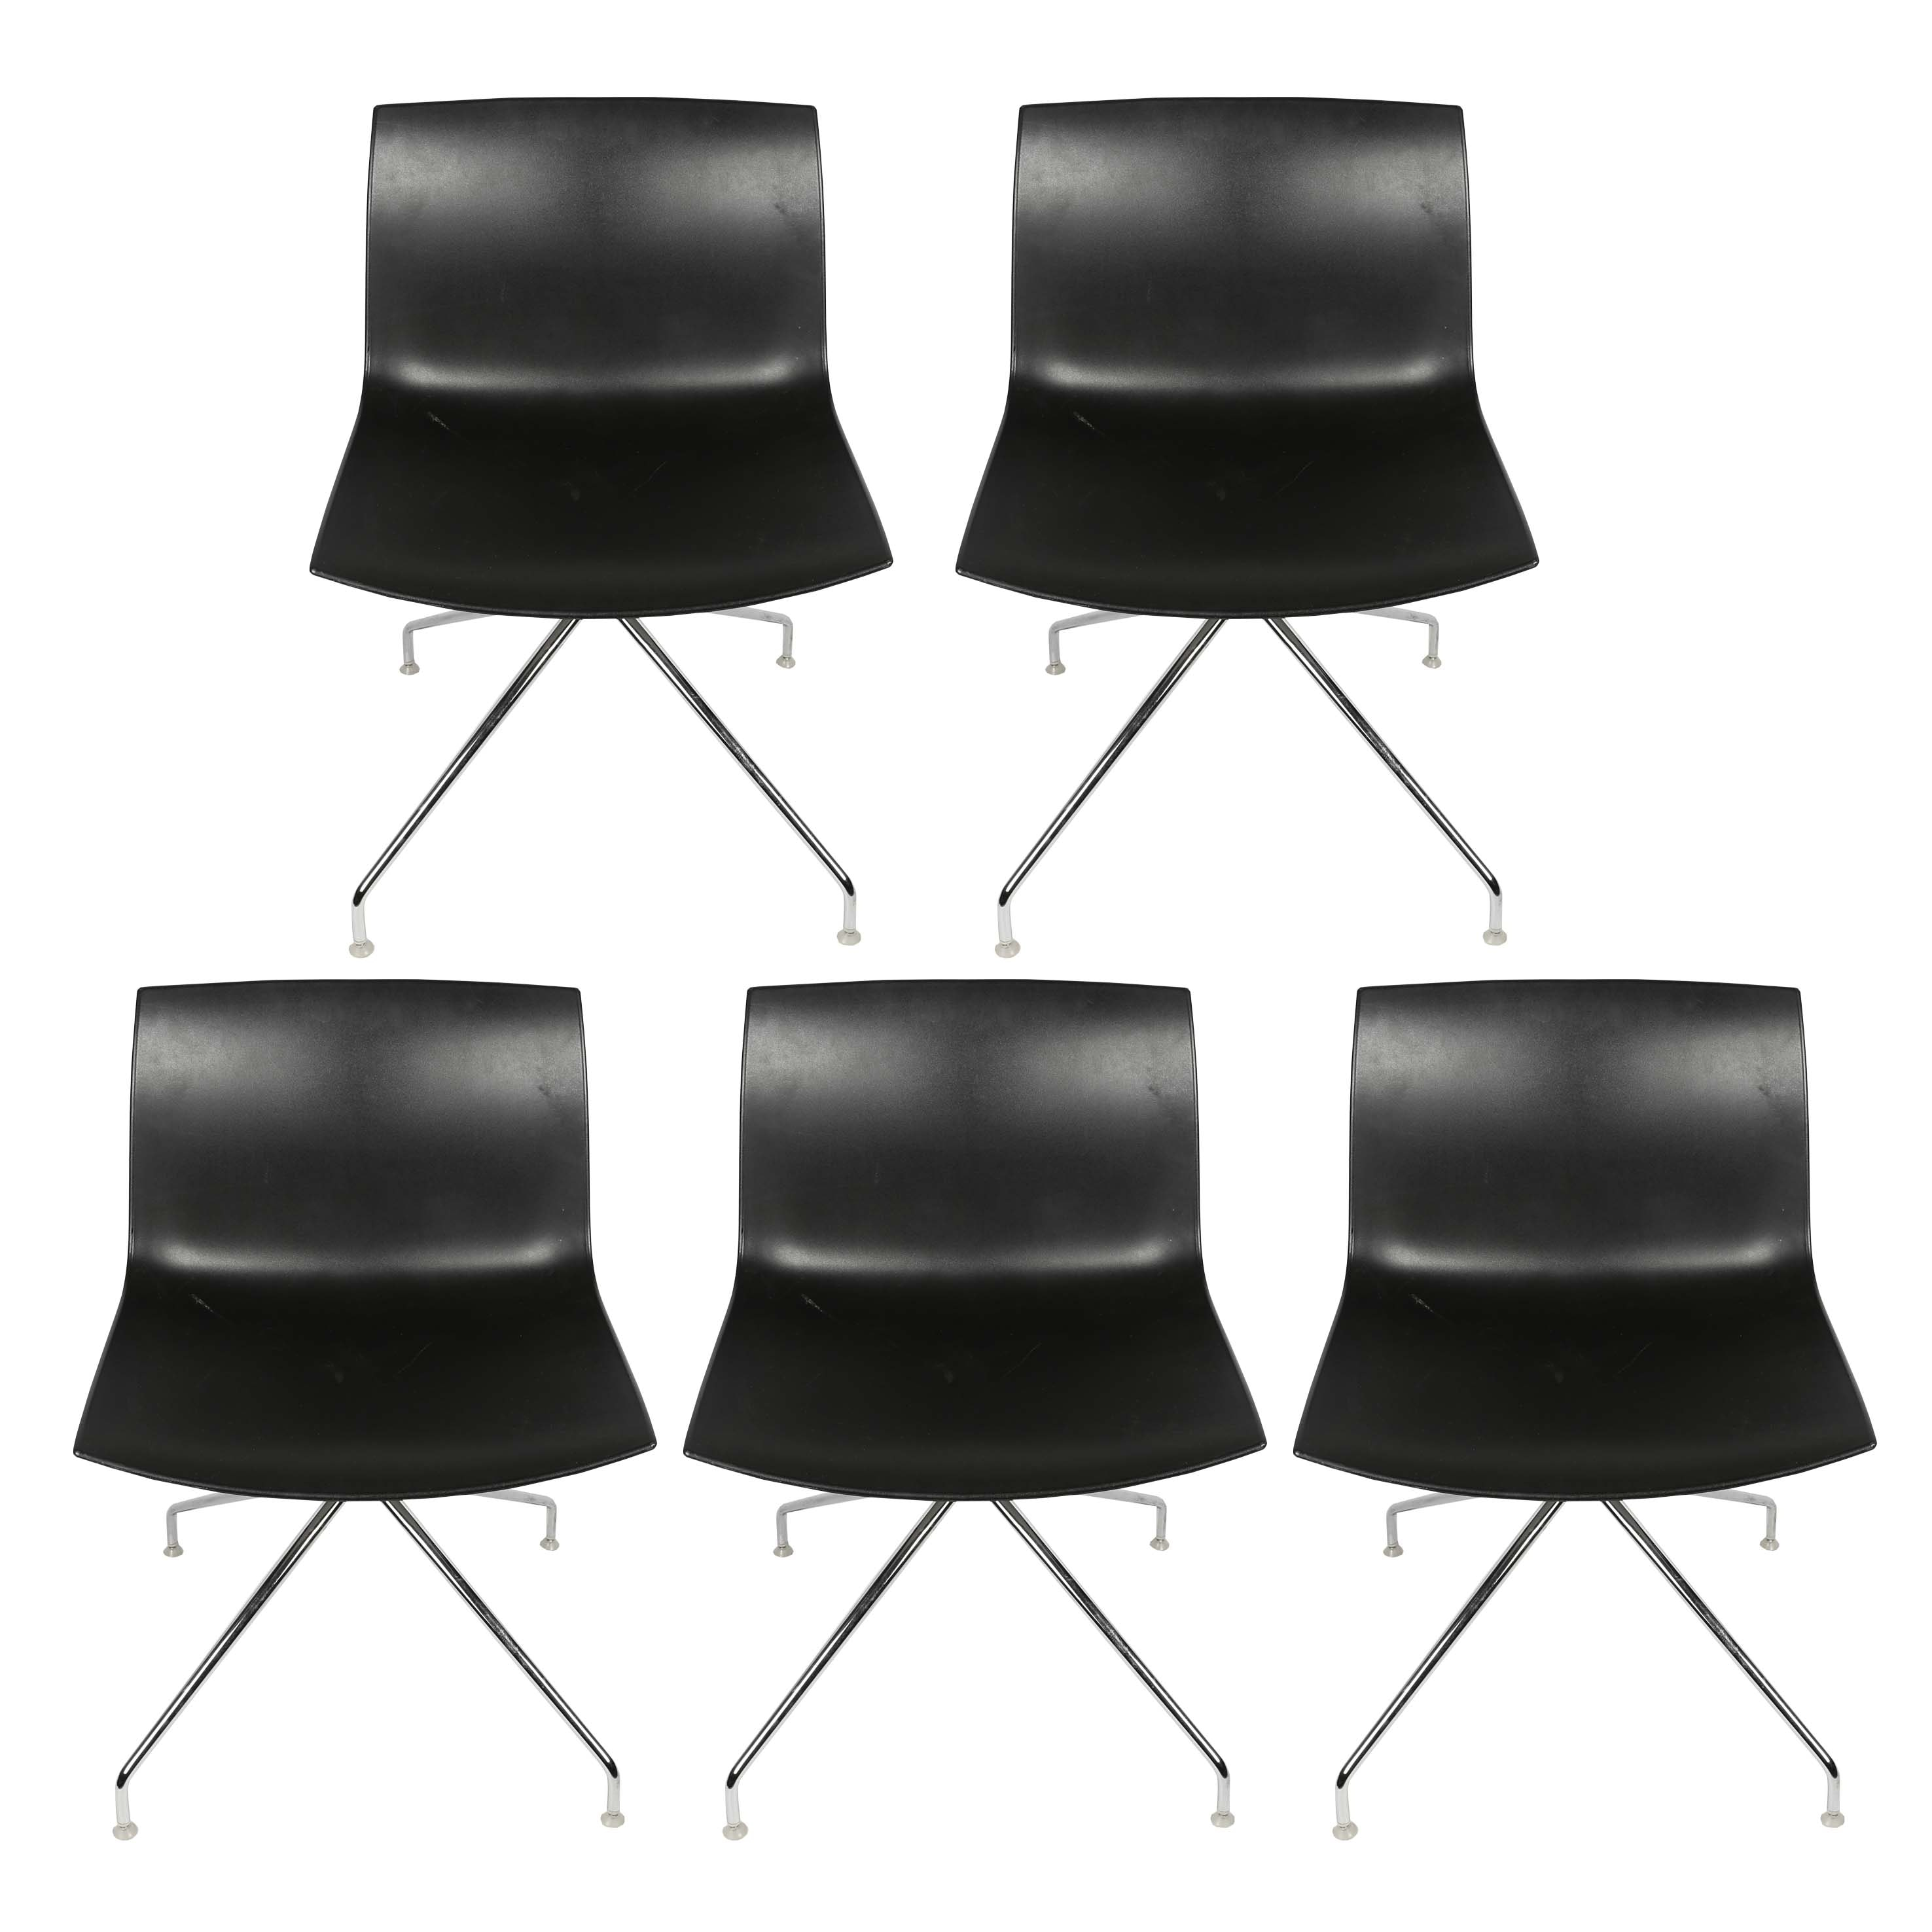 Italian Modern Lievore Molina Chairs for Arper